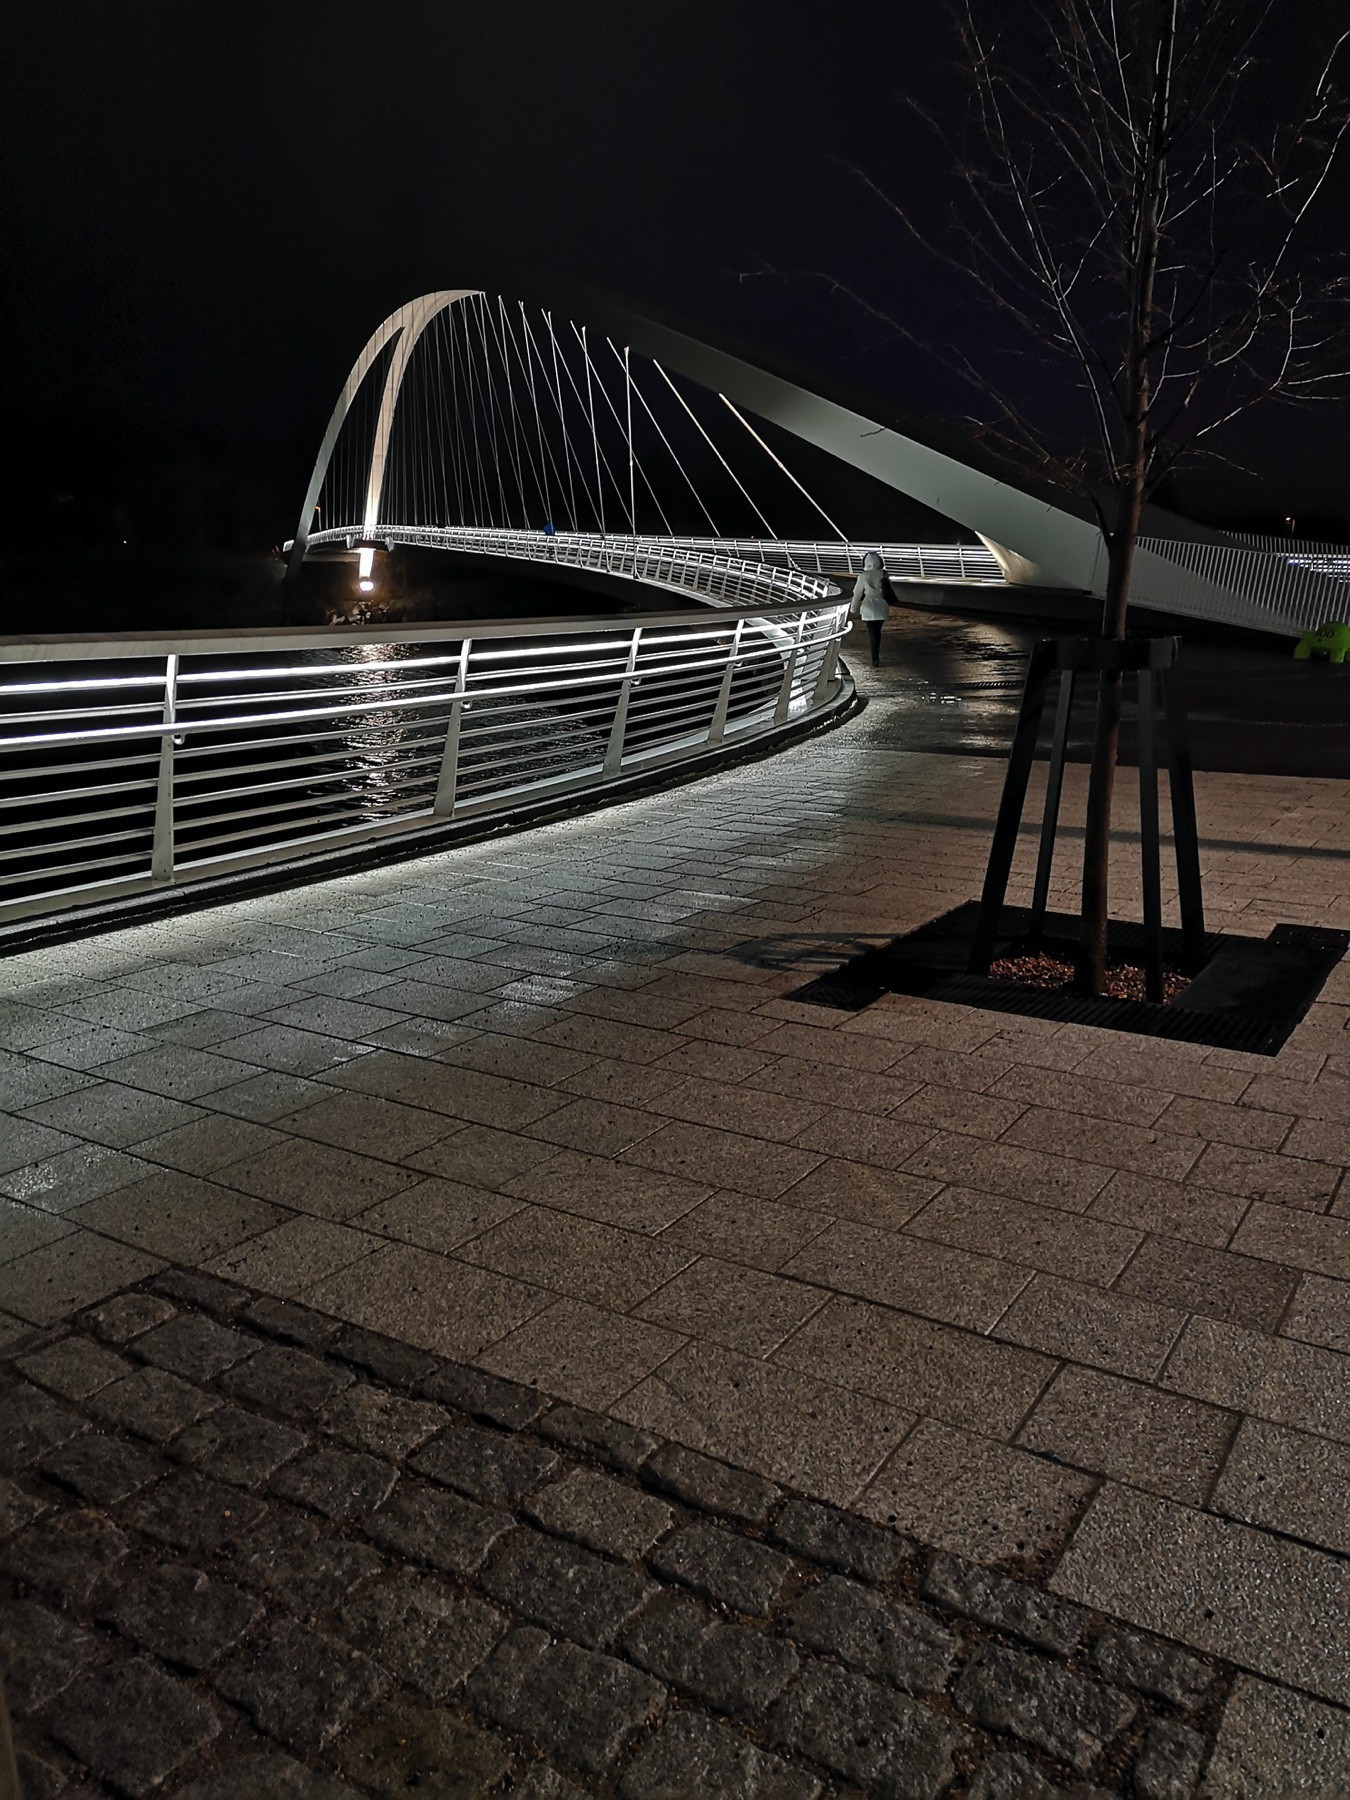 Isoisänsilta bridge in Kalasatama, Helsinki in complete darkness looking like there is nothing on the other side